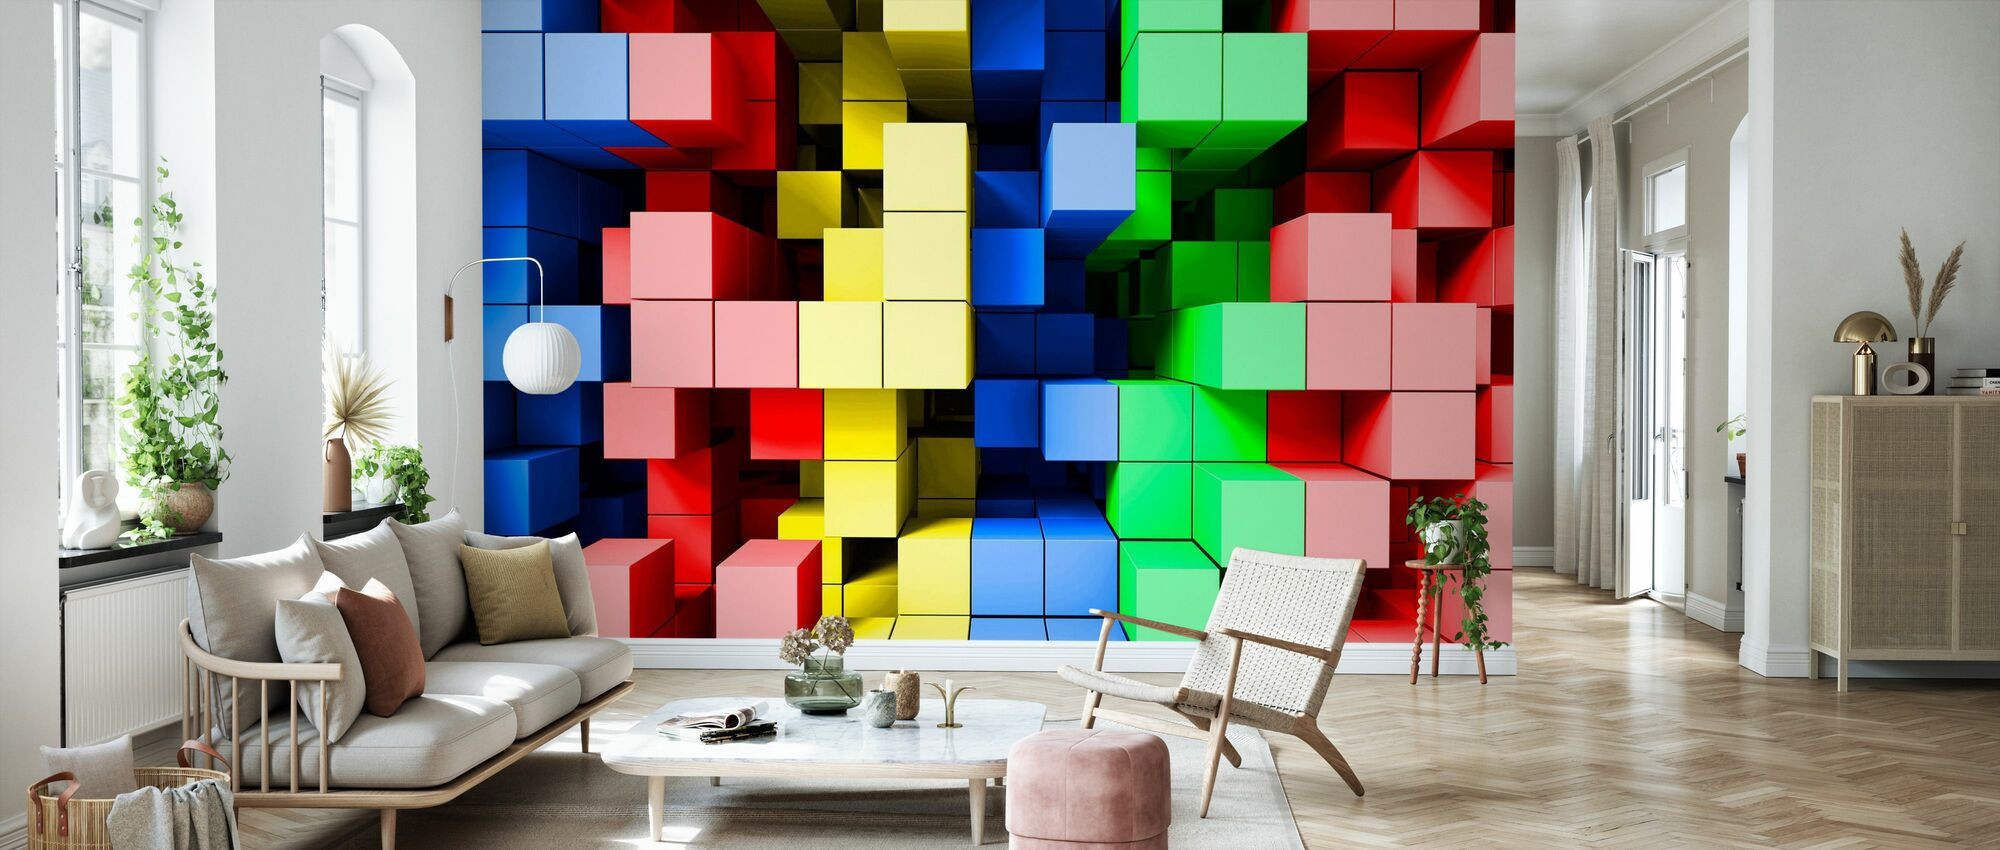 Deep Tetris Color - Wallpaper - Living Room